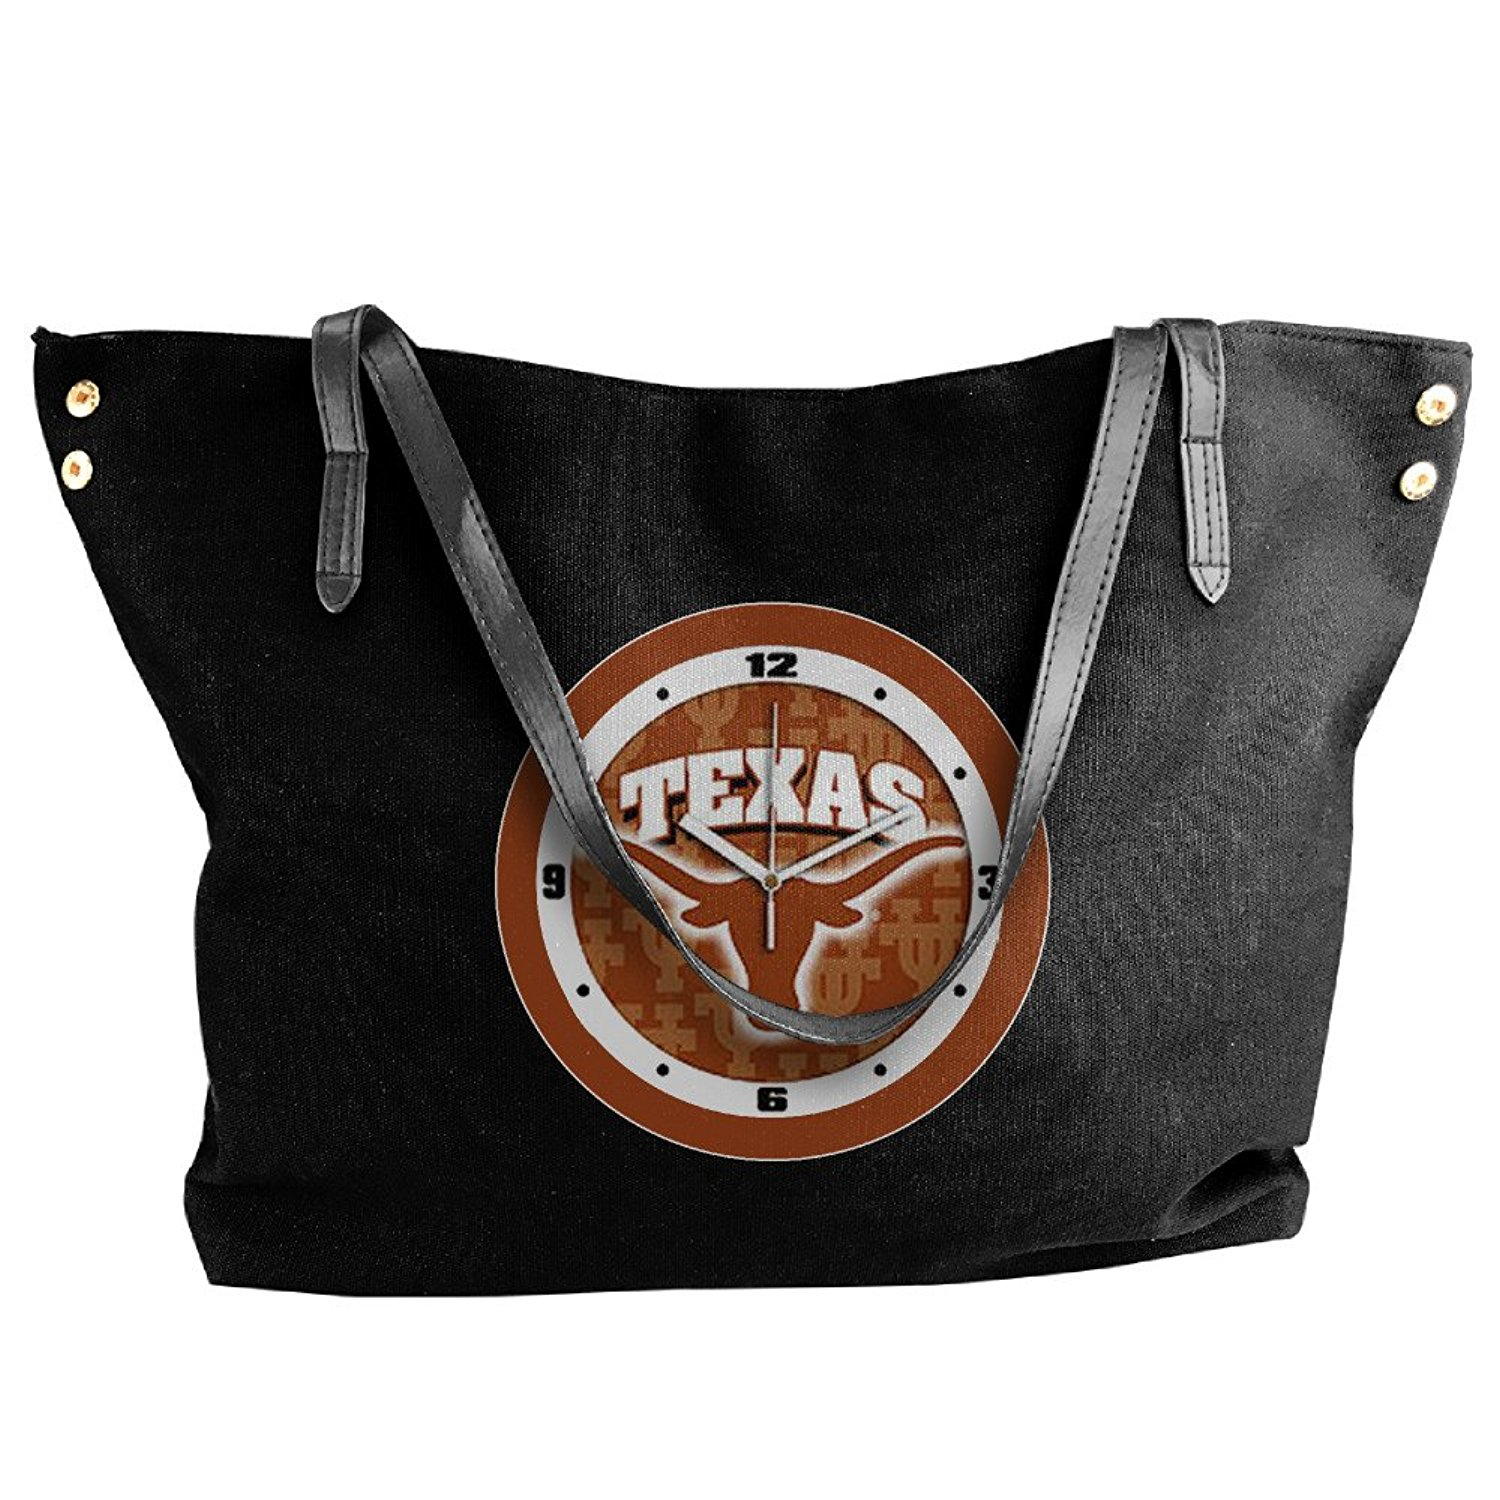 Texas Longhorns College Handbag Shoulder Bag For Women